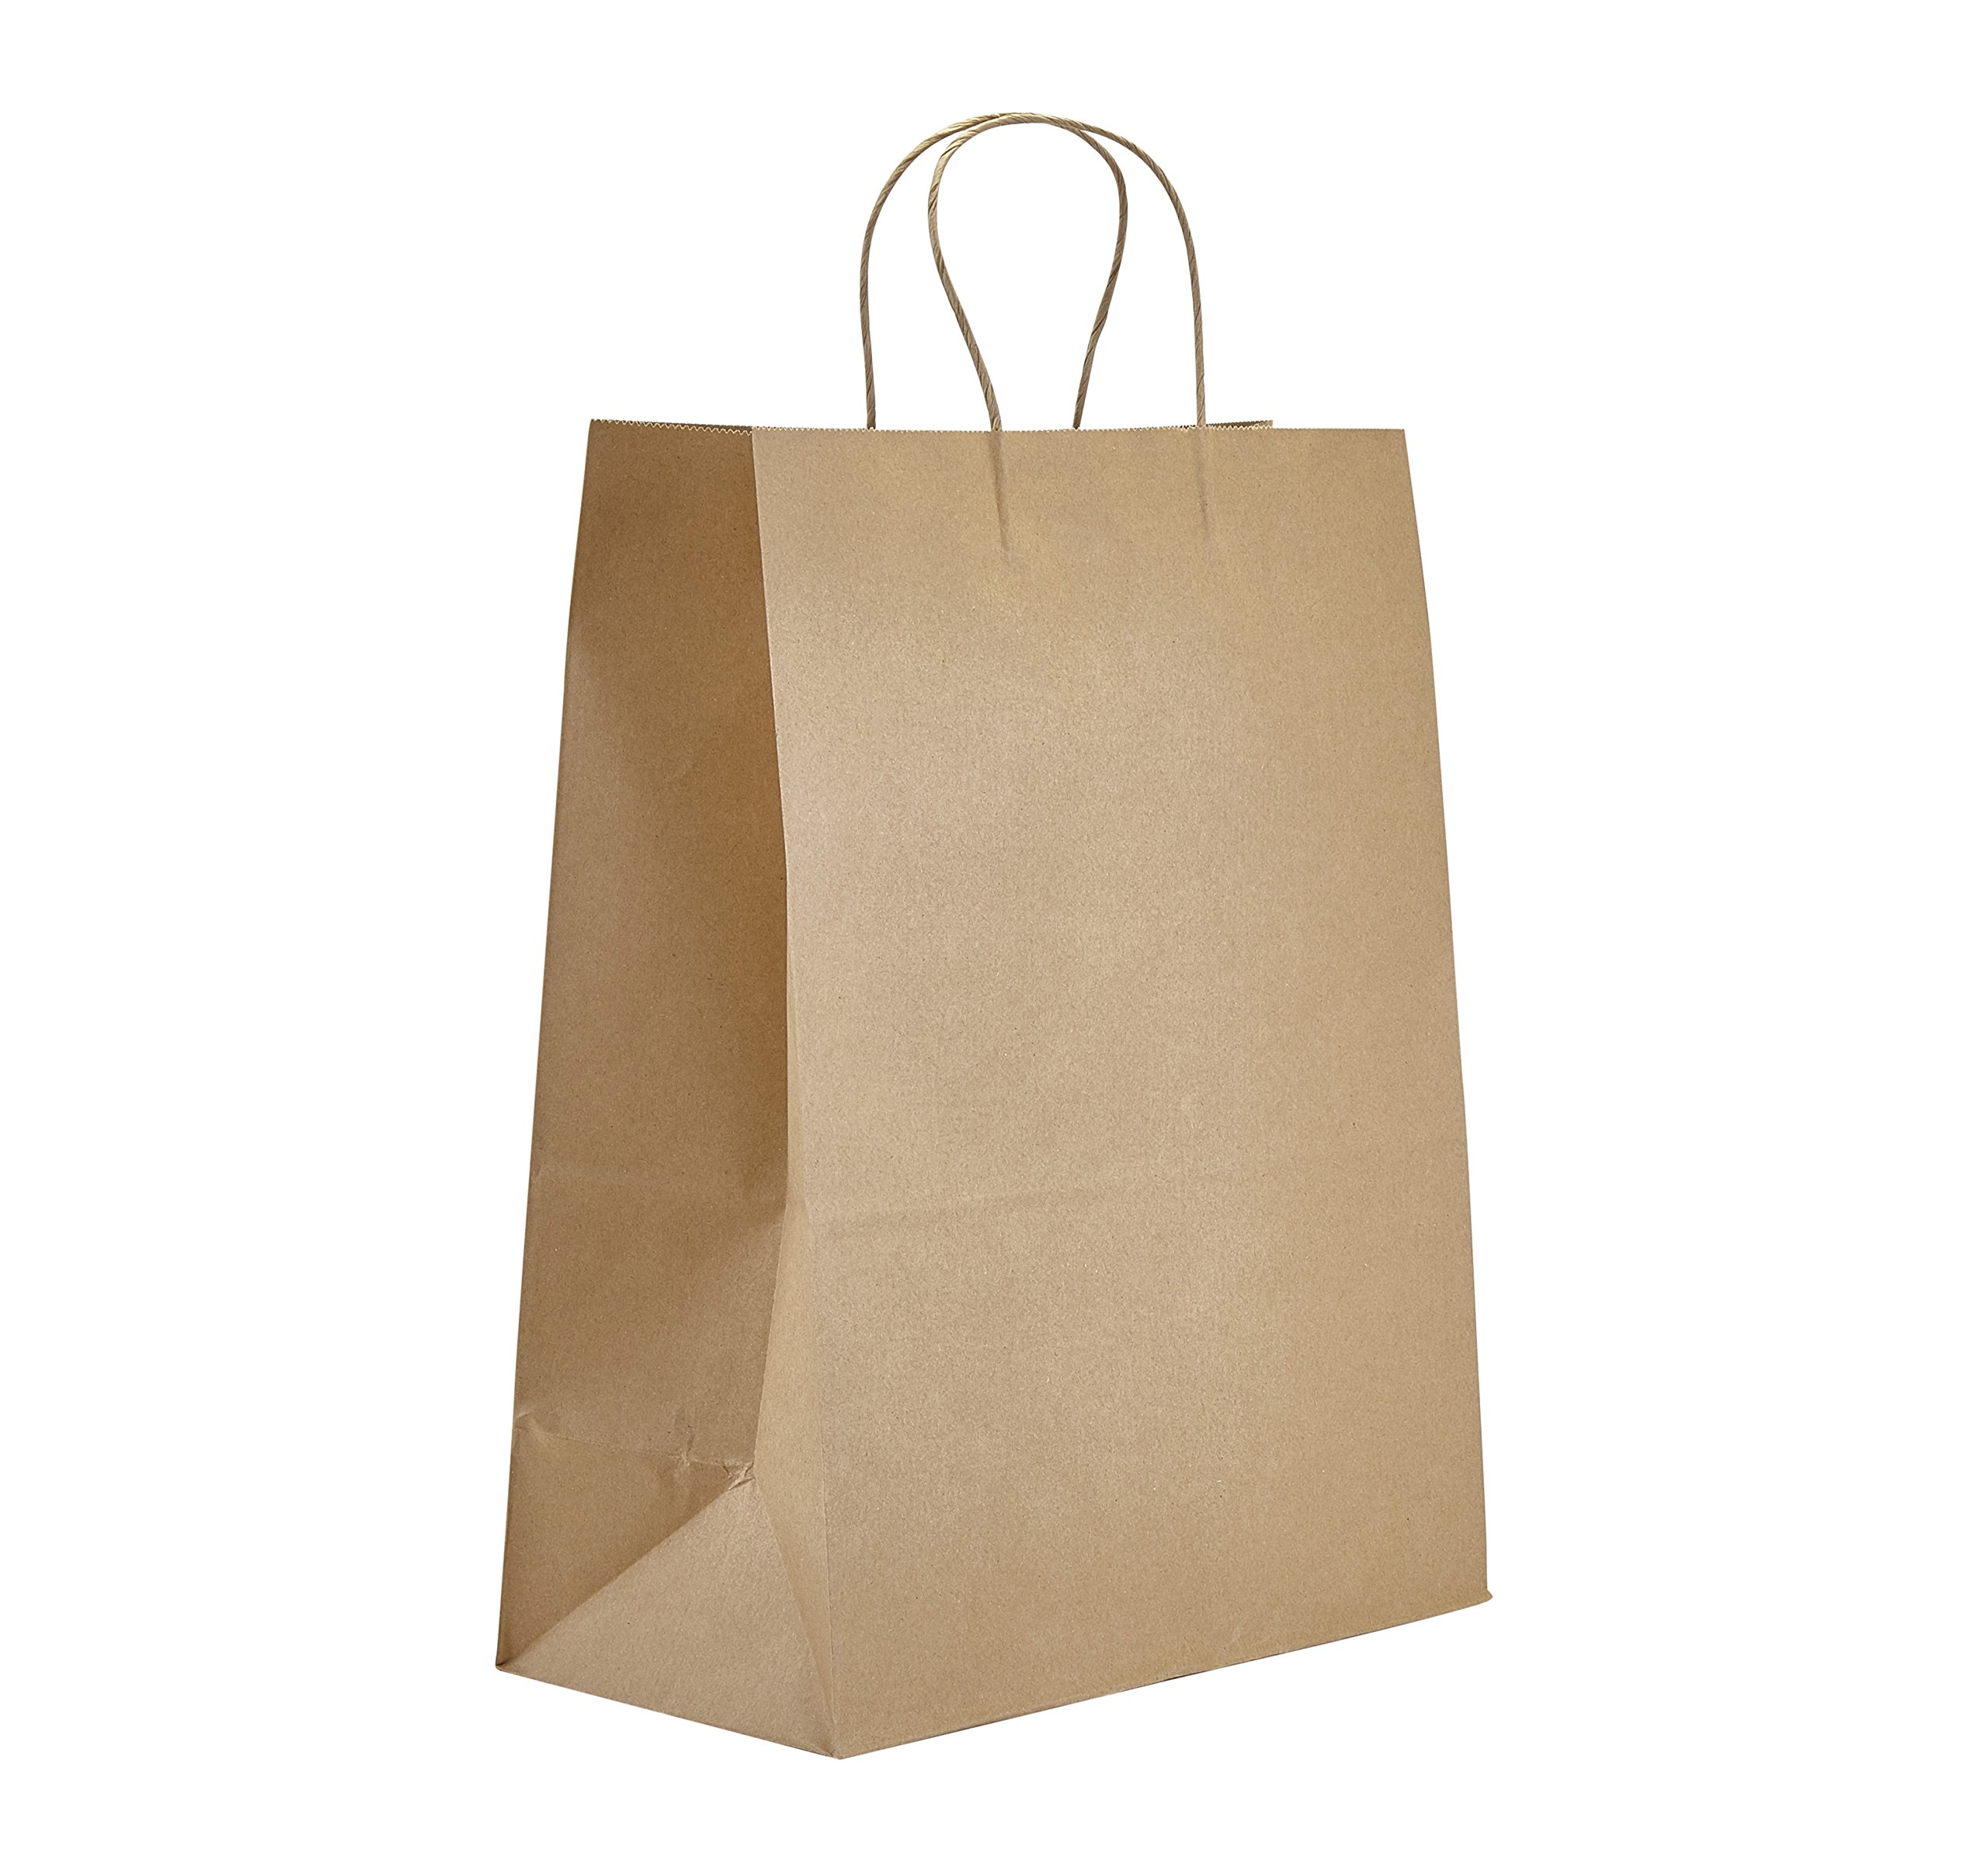 PTP - 13'' x 7'' x 17'' Natural Kraft Paper Gift Tote Bags - 250 Count| Perfect for Birthdays, Weddings, Holidays and All Occasions | White or Natural Colors | Multiple Sizes